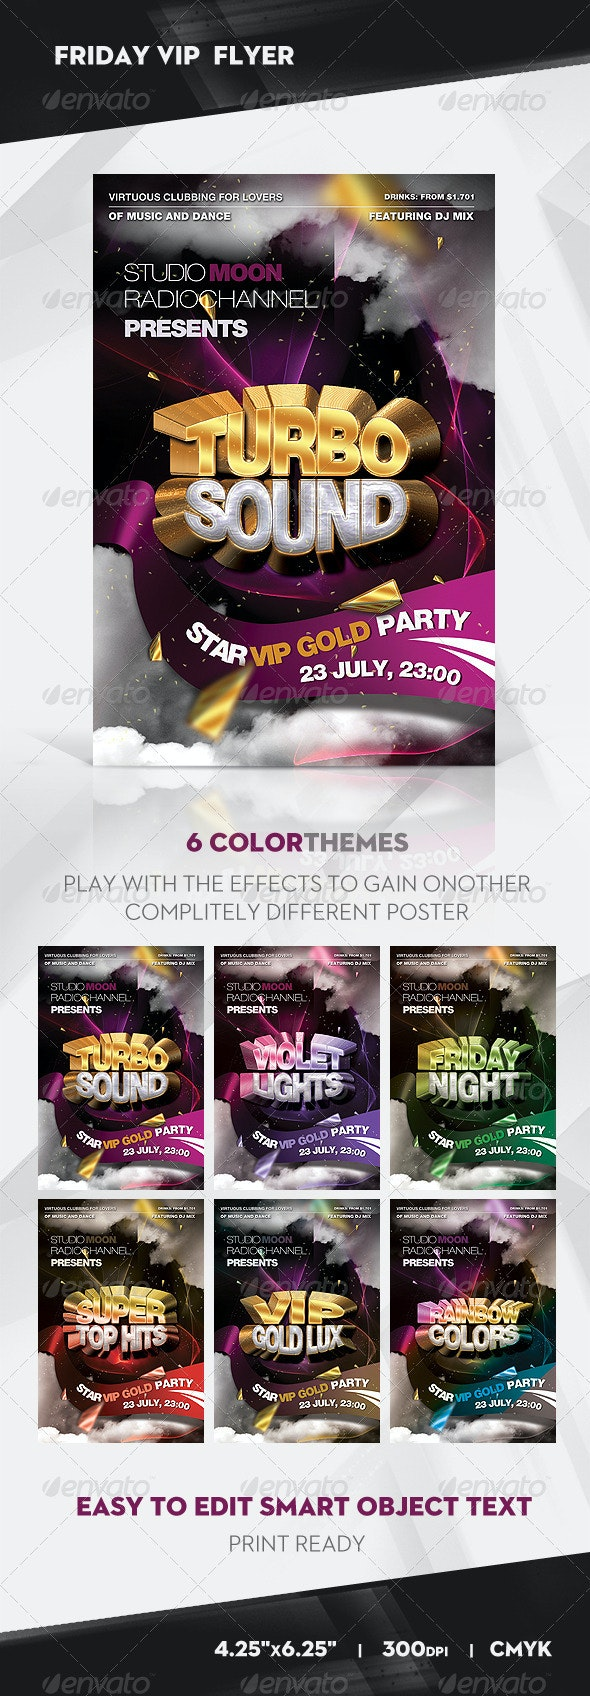 Friday VIP Turbo Sound Party Flyer / Poster - Clubs & Parties Events